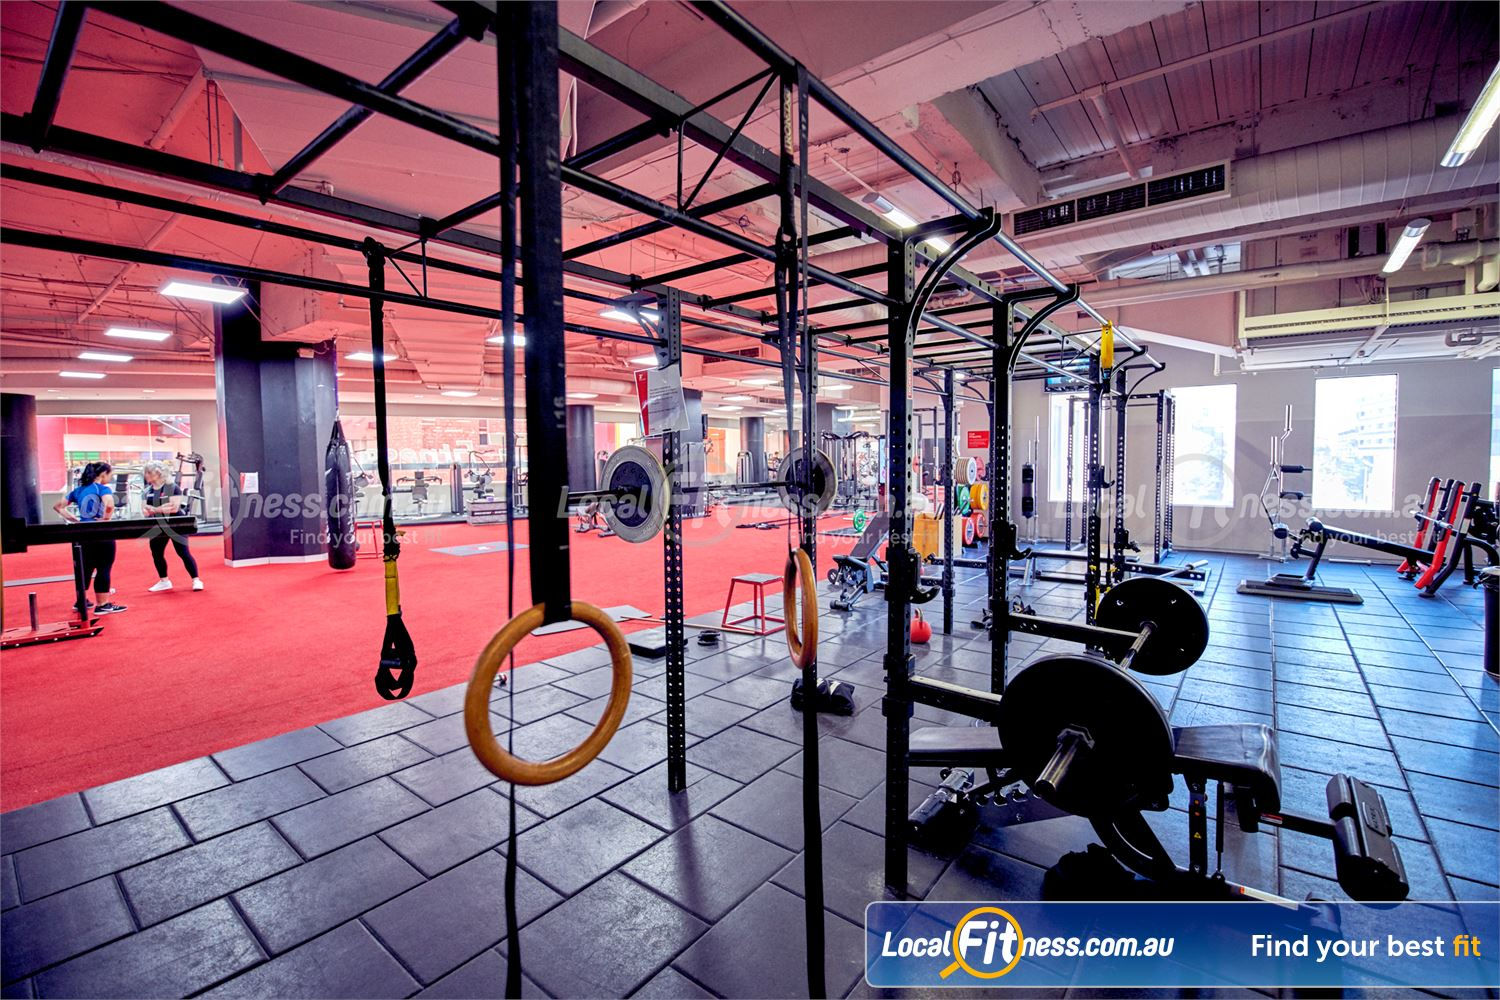 Fitness First Melbourne Central Platinum Near Southbank The strength matrix is great for a whole range of functional strength exercises.